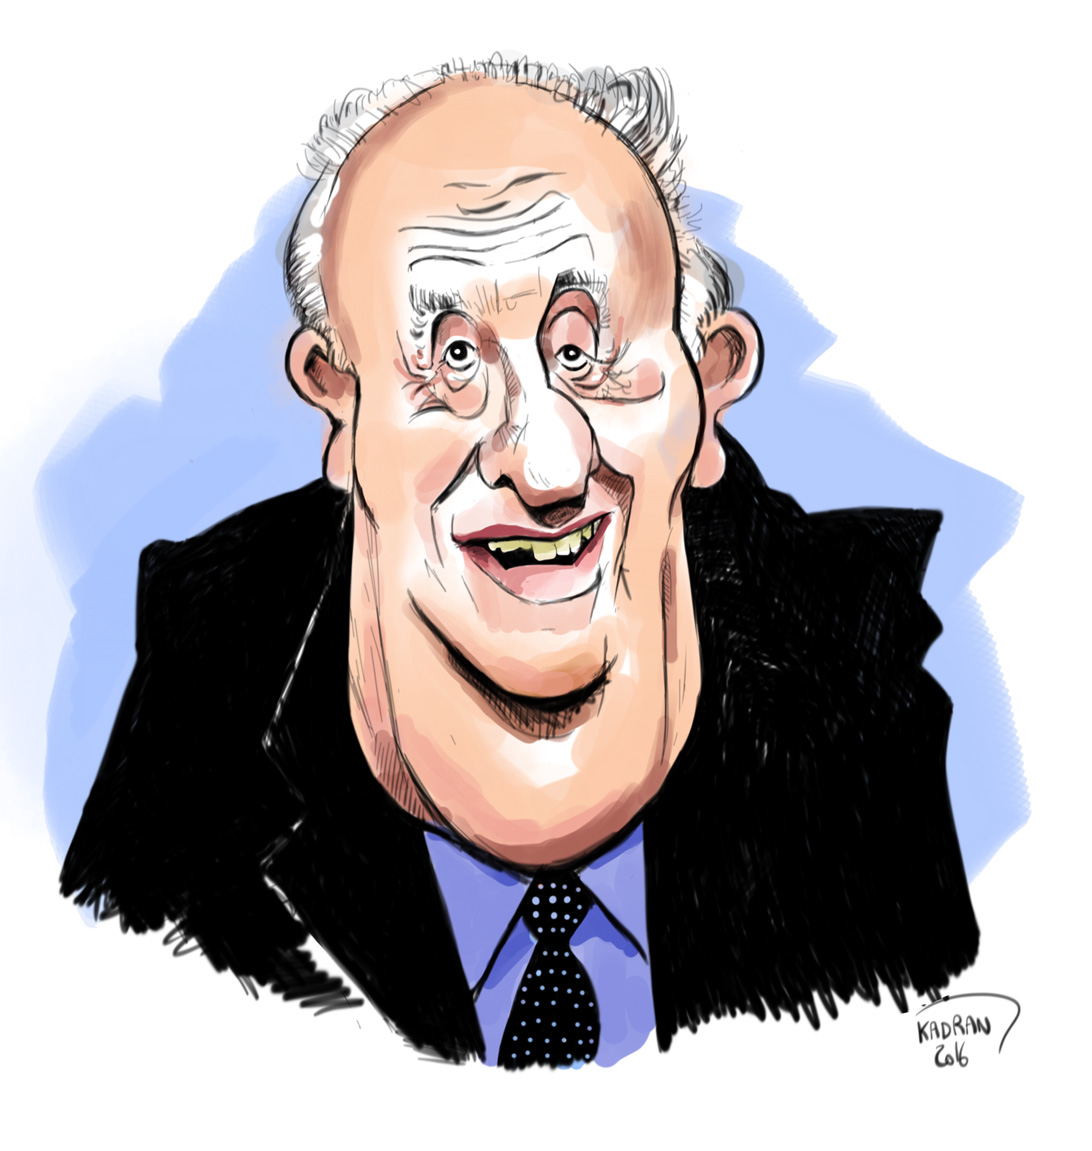 Pierre Tchernia caricature sketch